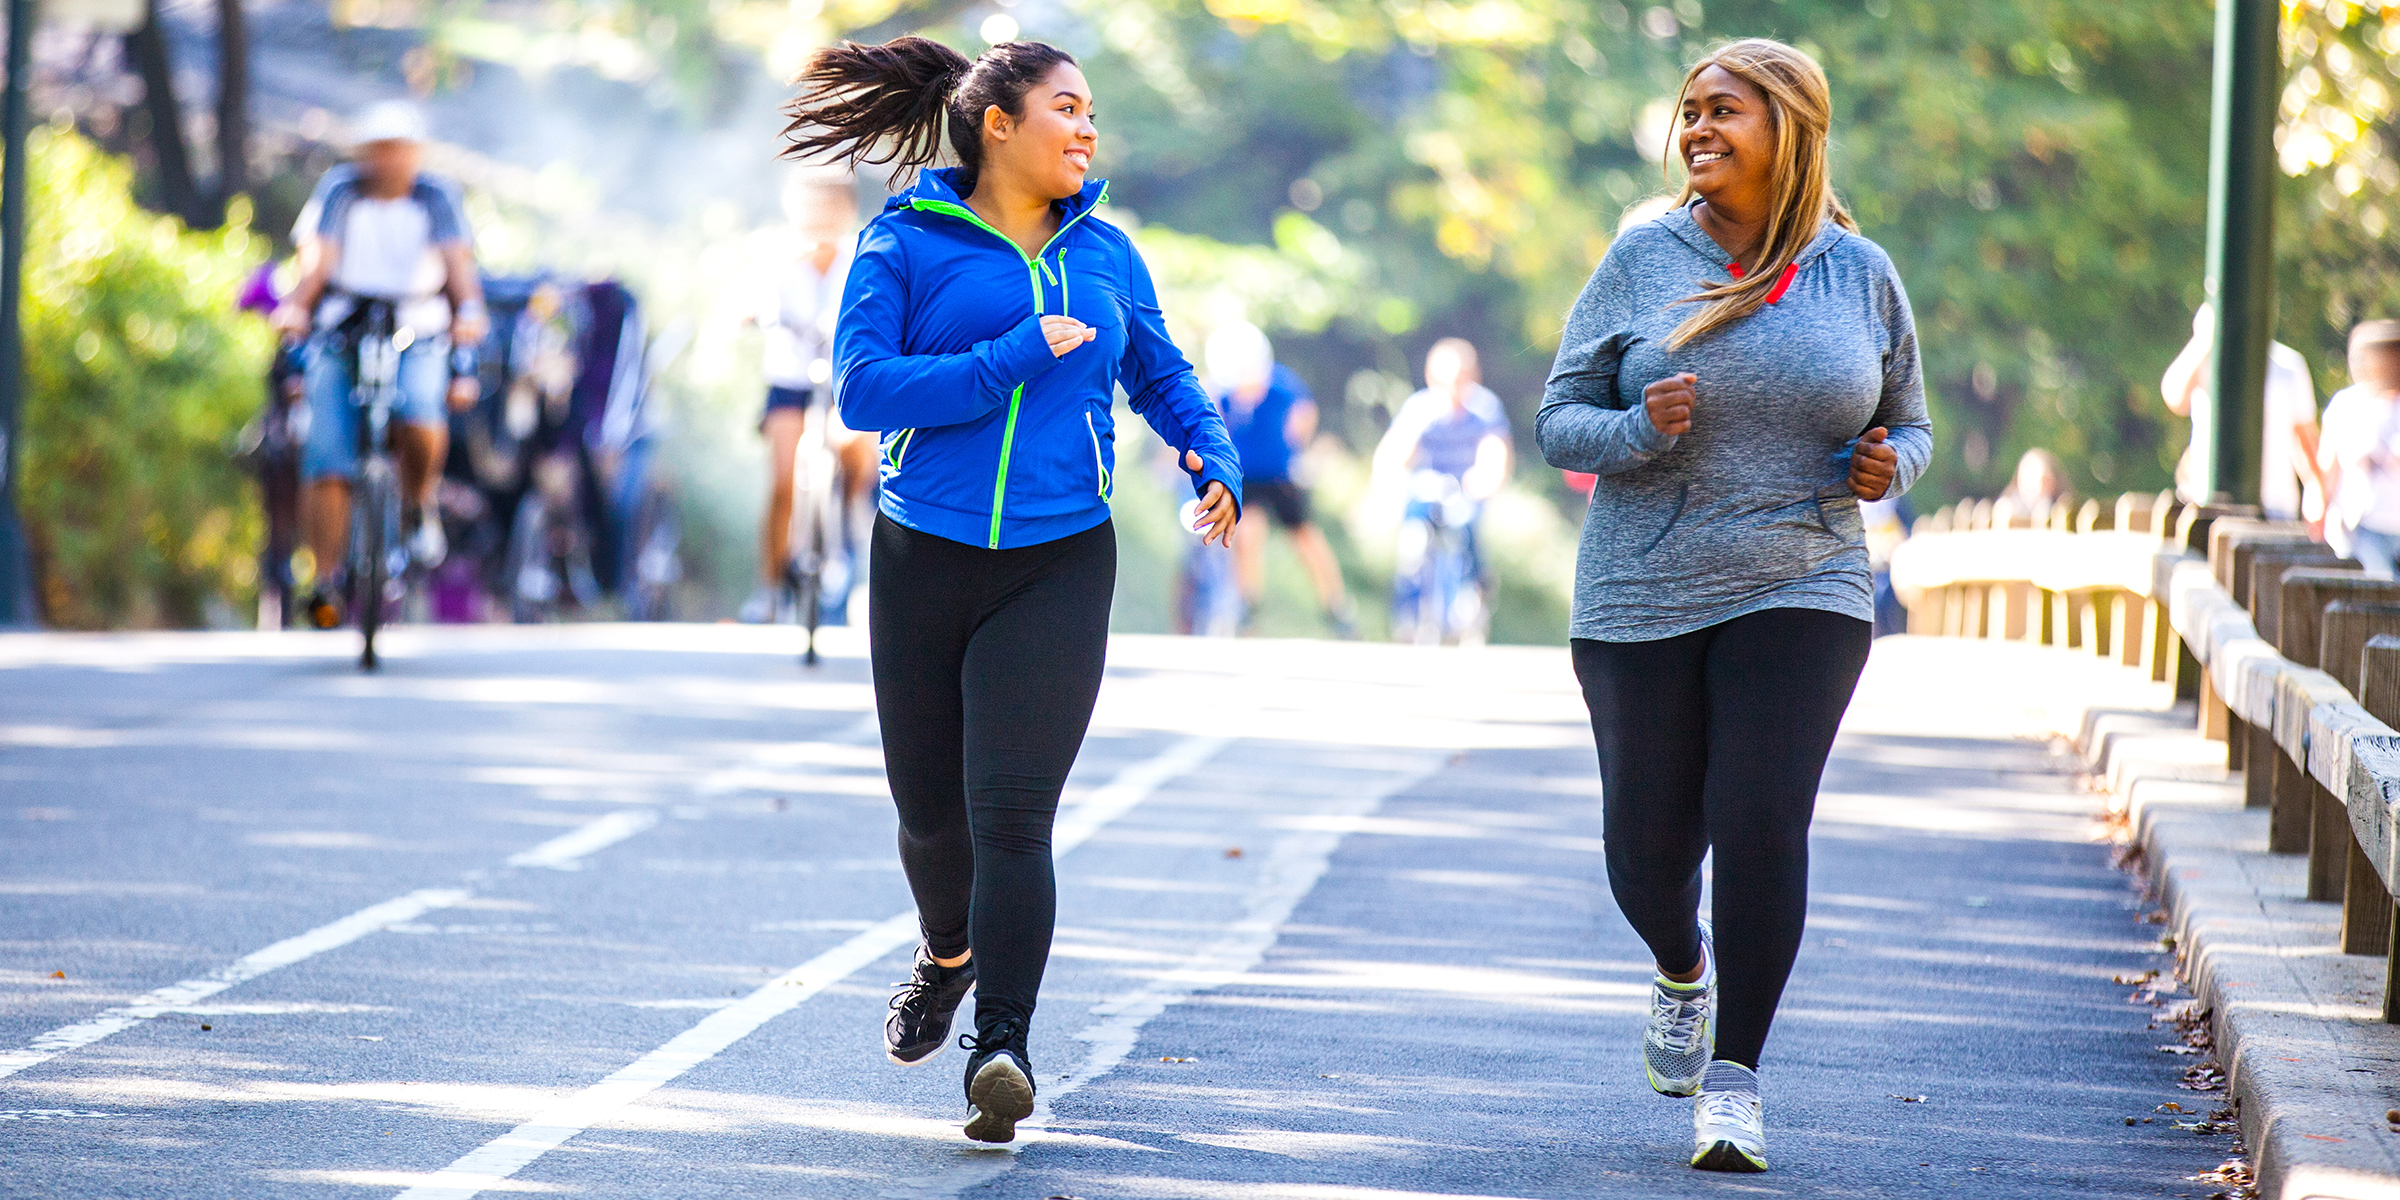 How to improve brain health: aerobic exercise helps young adults